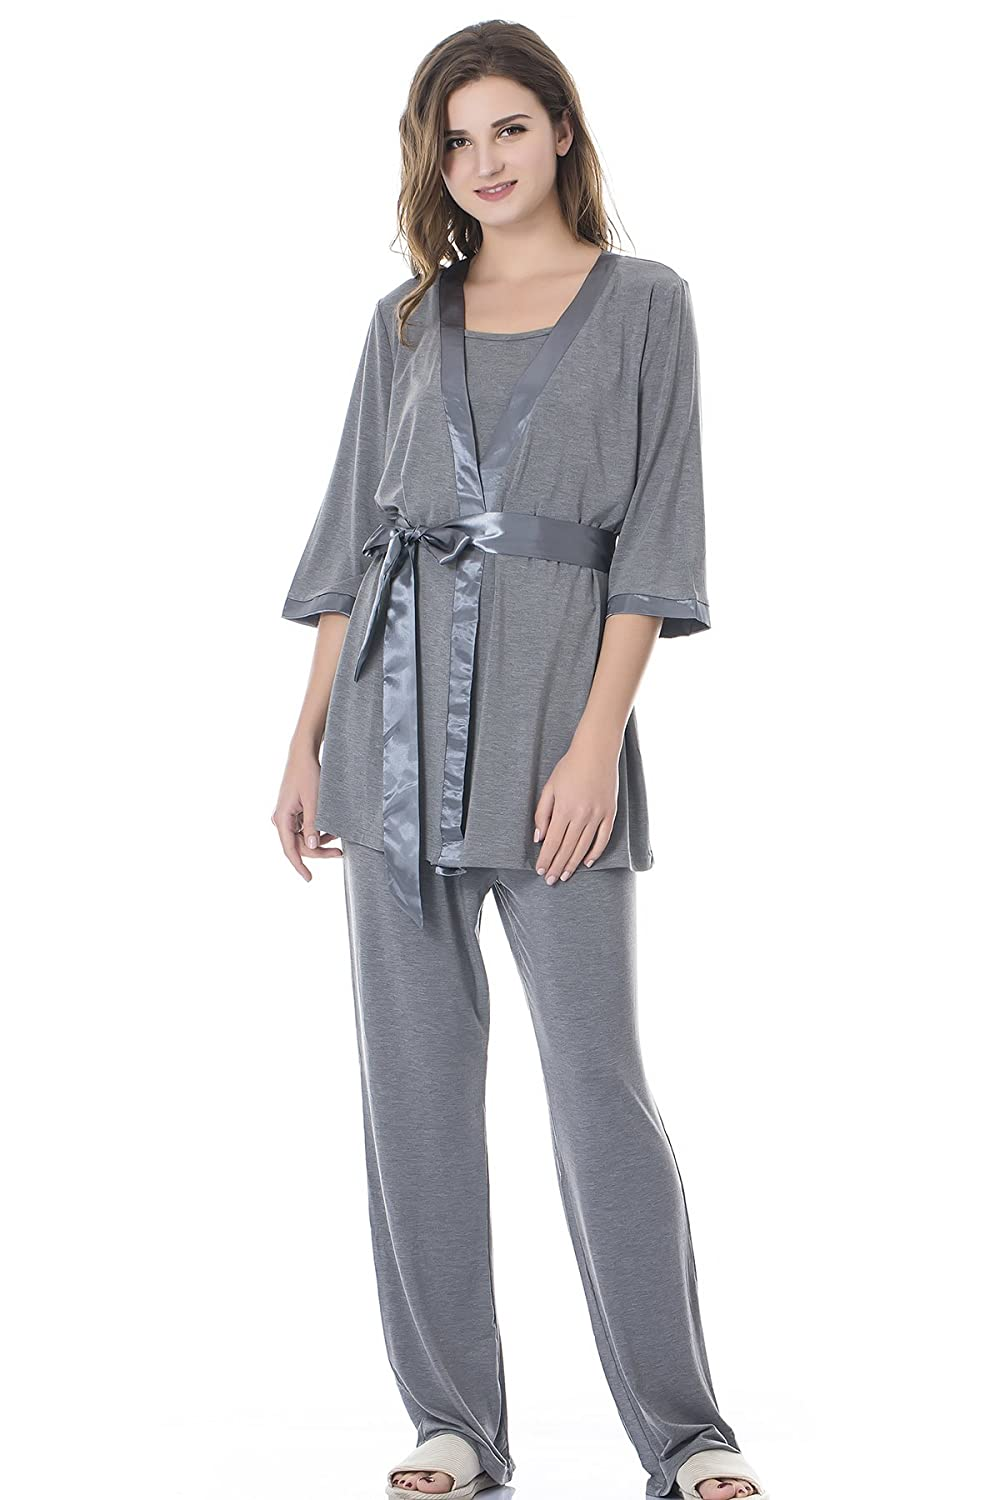 Bearsland Maternity Women's 3 Pieces Soft Nursing Pajamas Set Postpartum Sleepwear